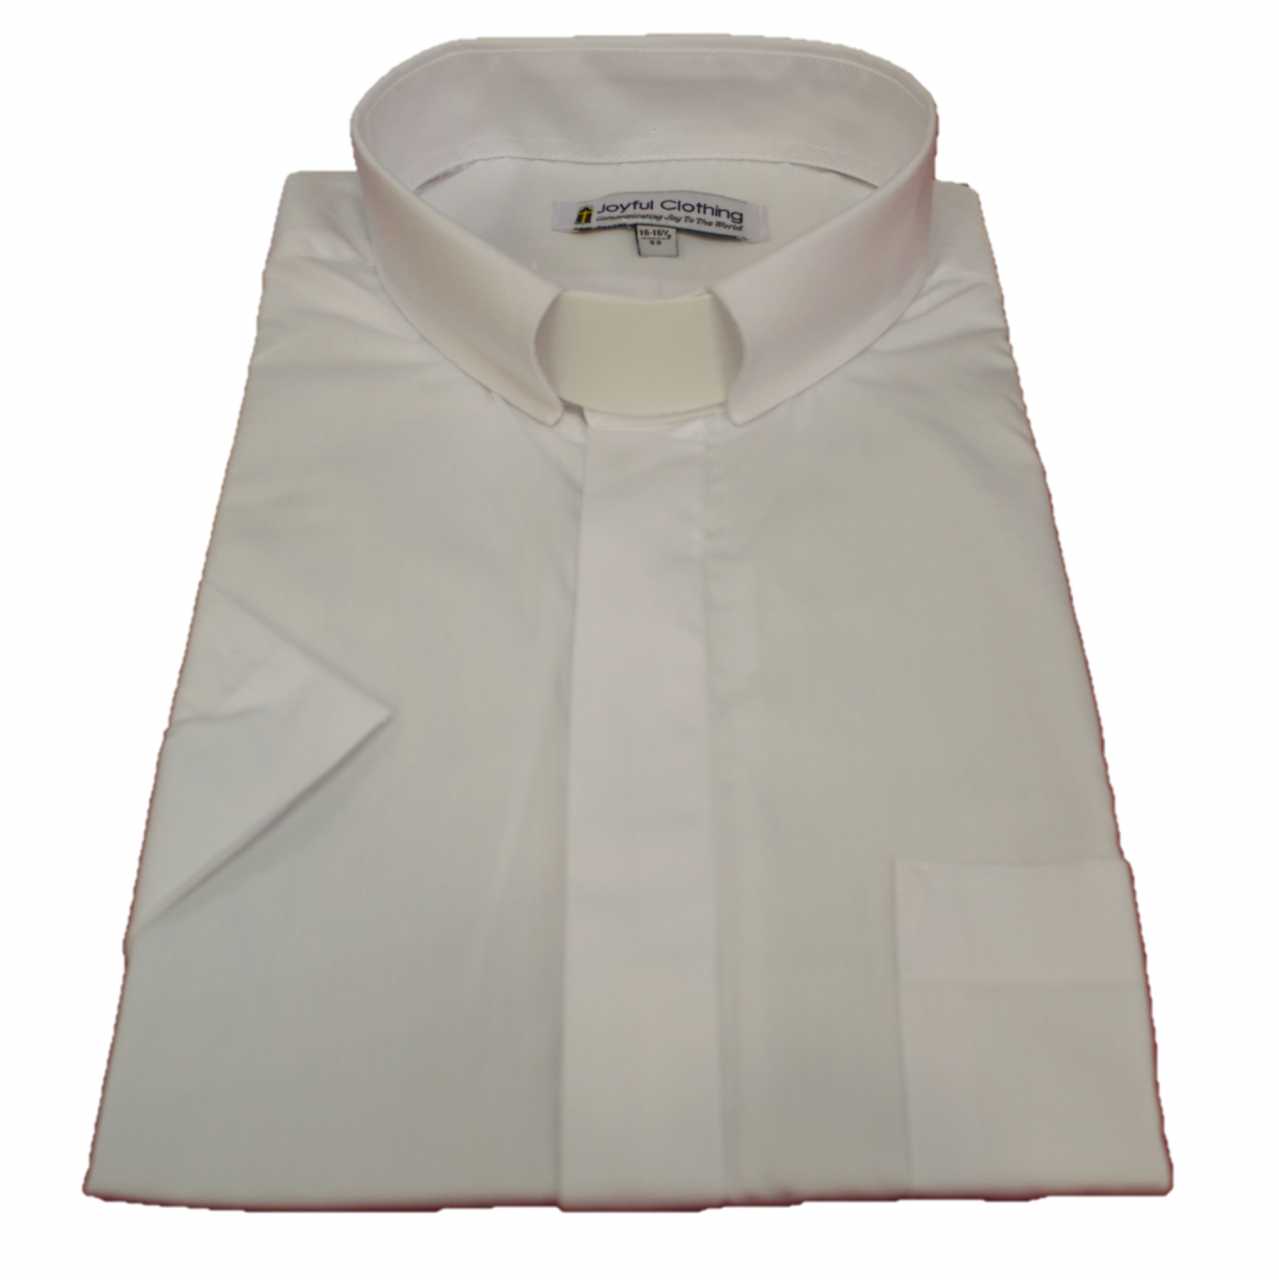 Clergy Robes Clerical Shirts Men 39 S Suits Men 39 S Short